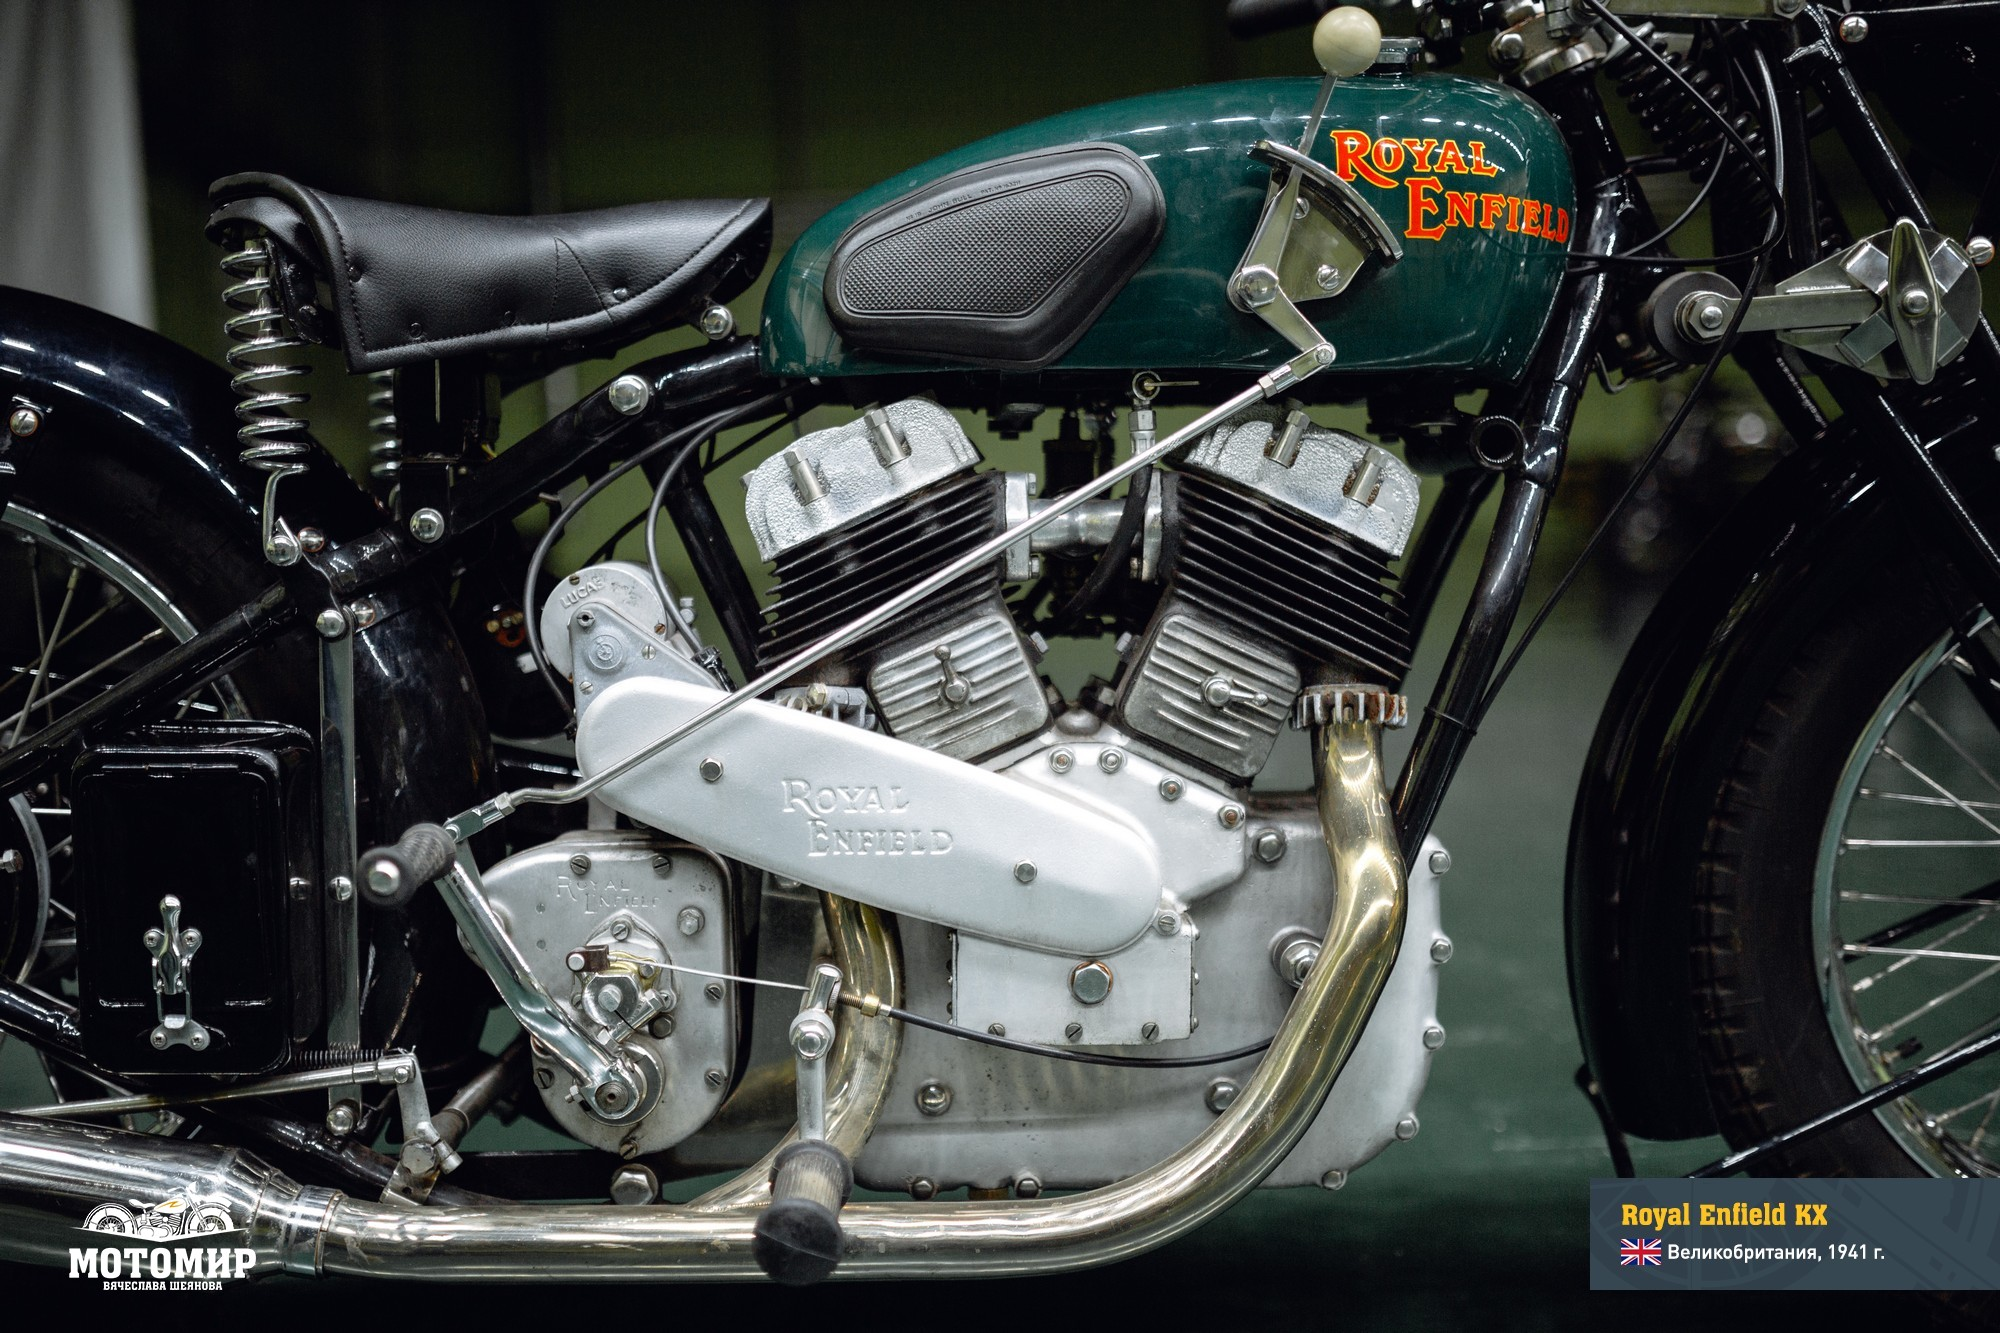 royal-enfield-kx-201601-web-31